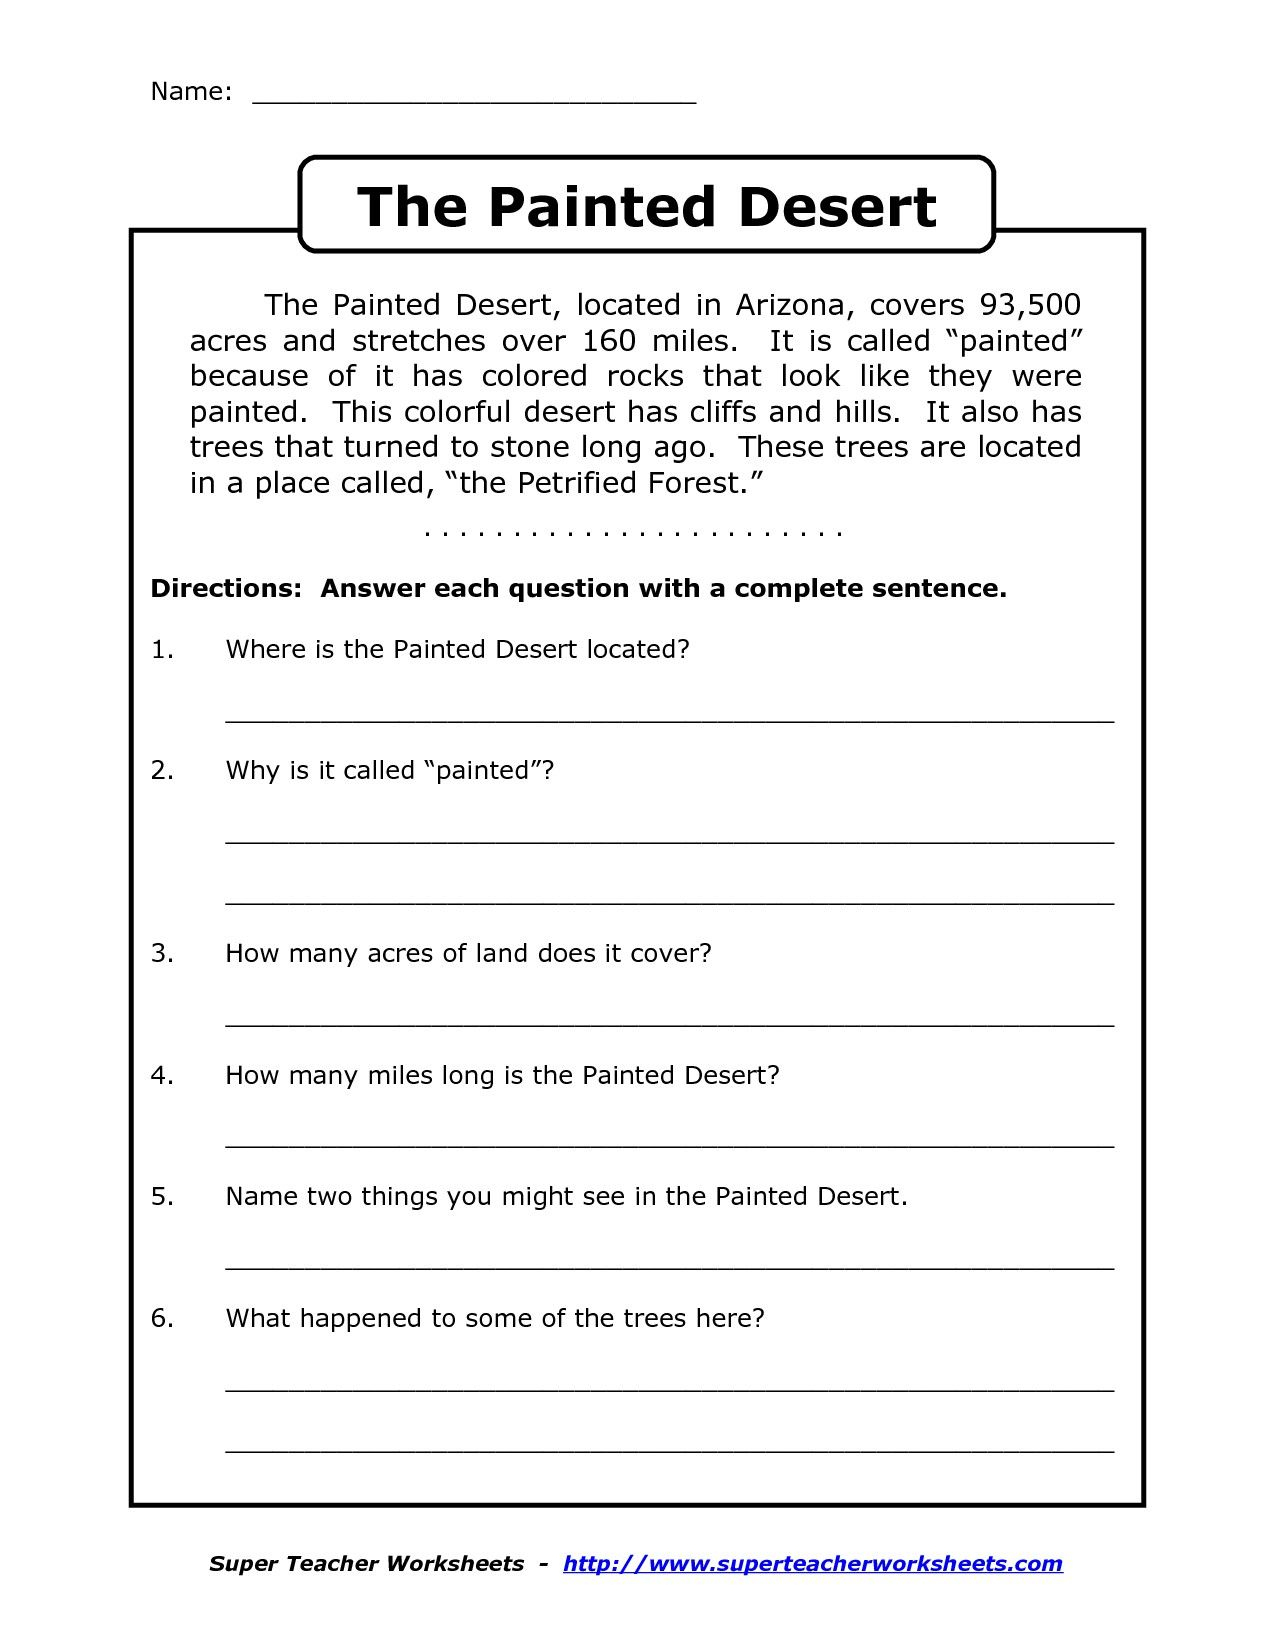 Free Printable English Comprehension Worksheets For Grade 4